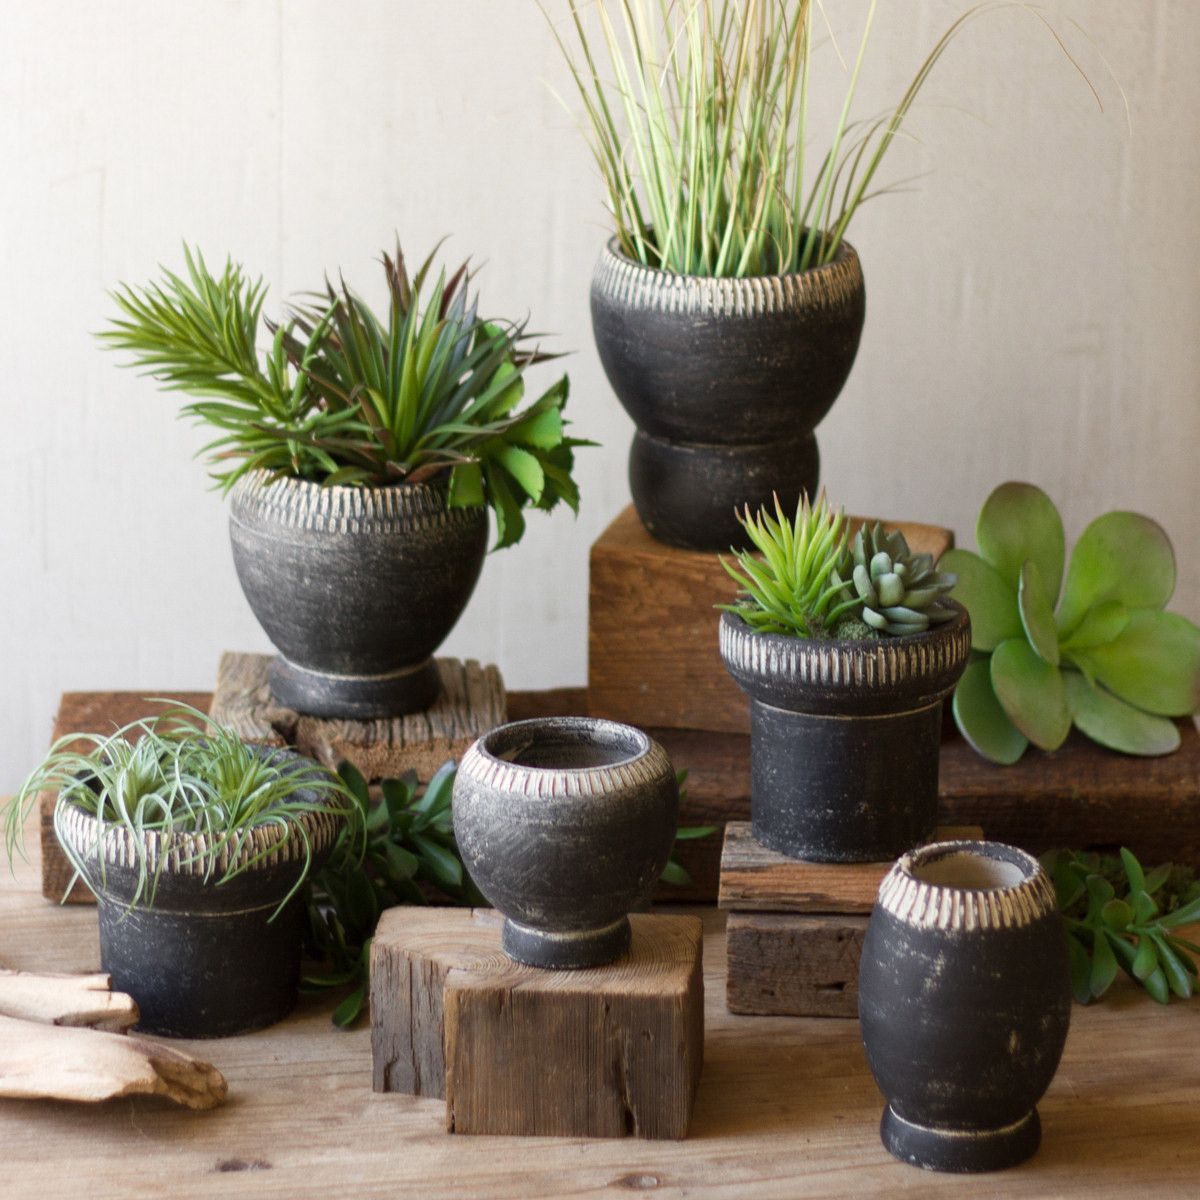 best gardens pinterest images herb pots using home our on clay creative your garden diy planters planter for terracotta vertical arizonapottery